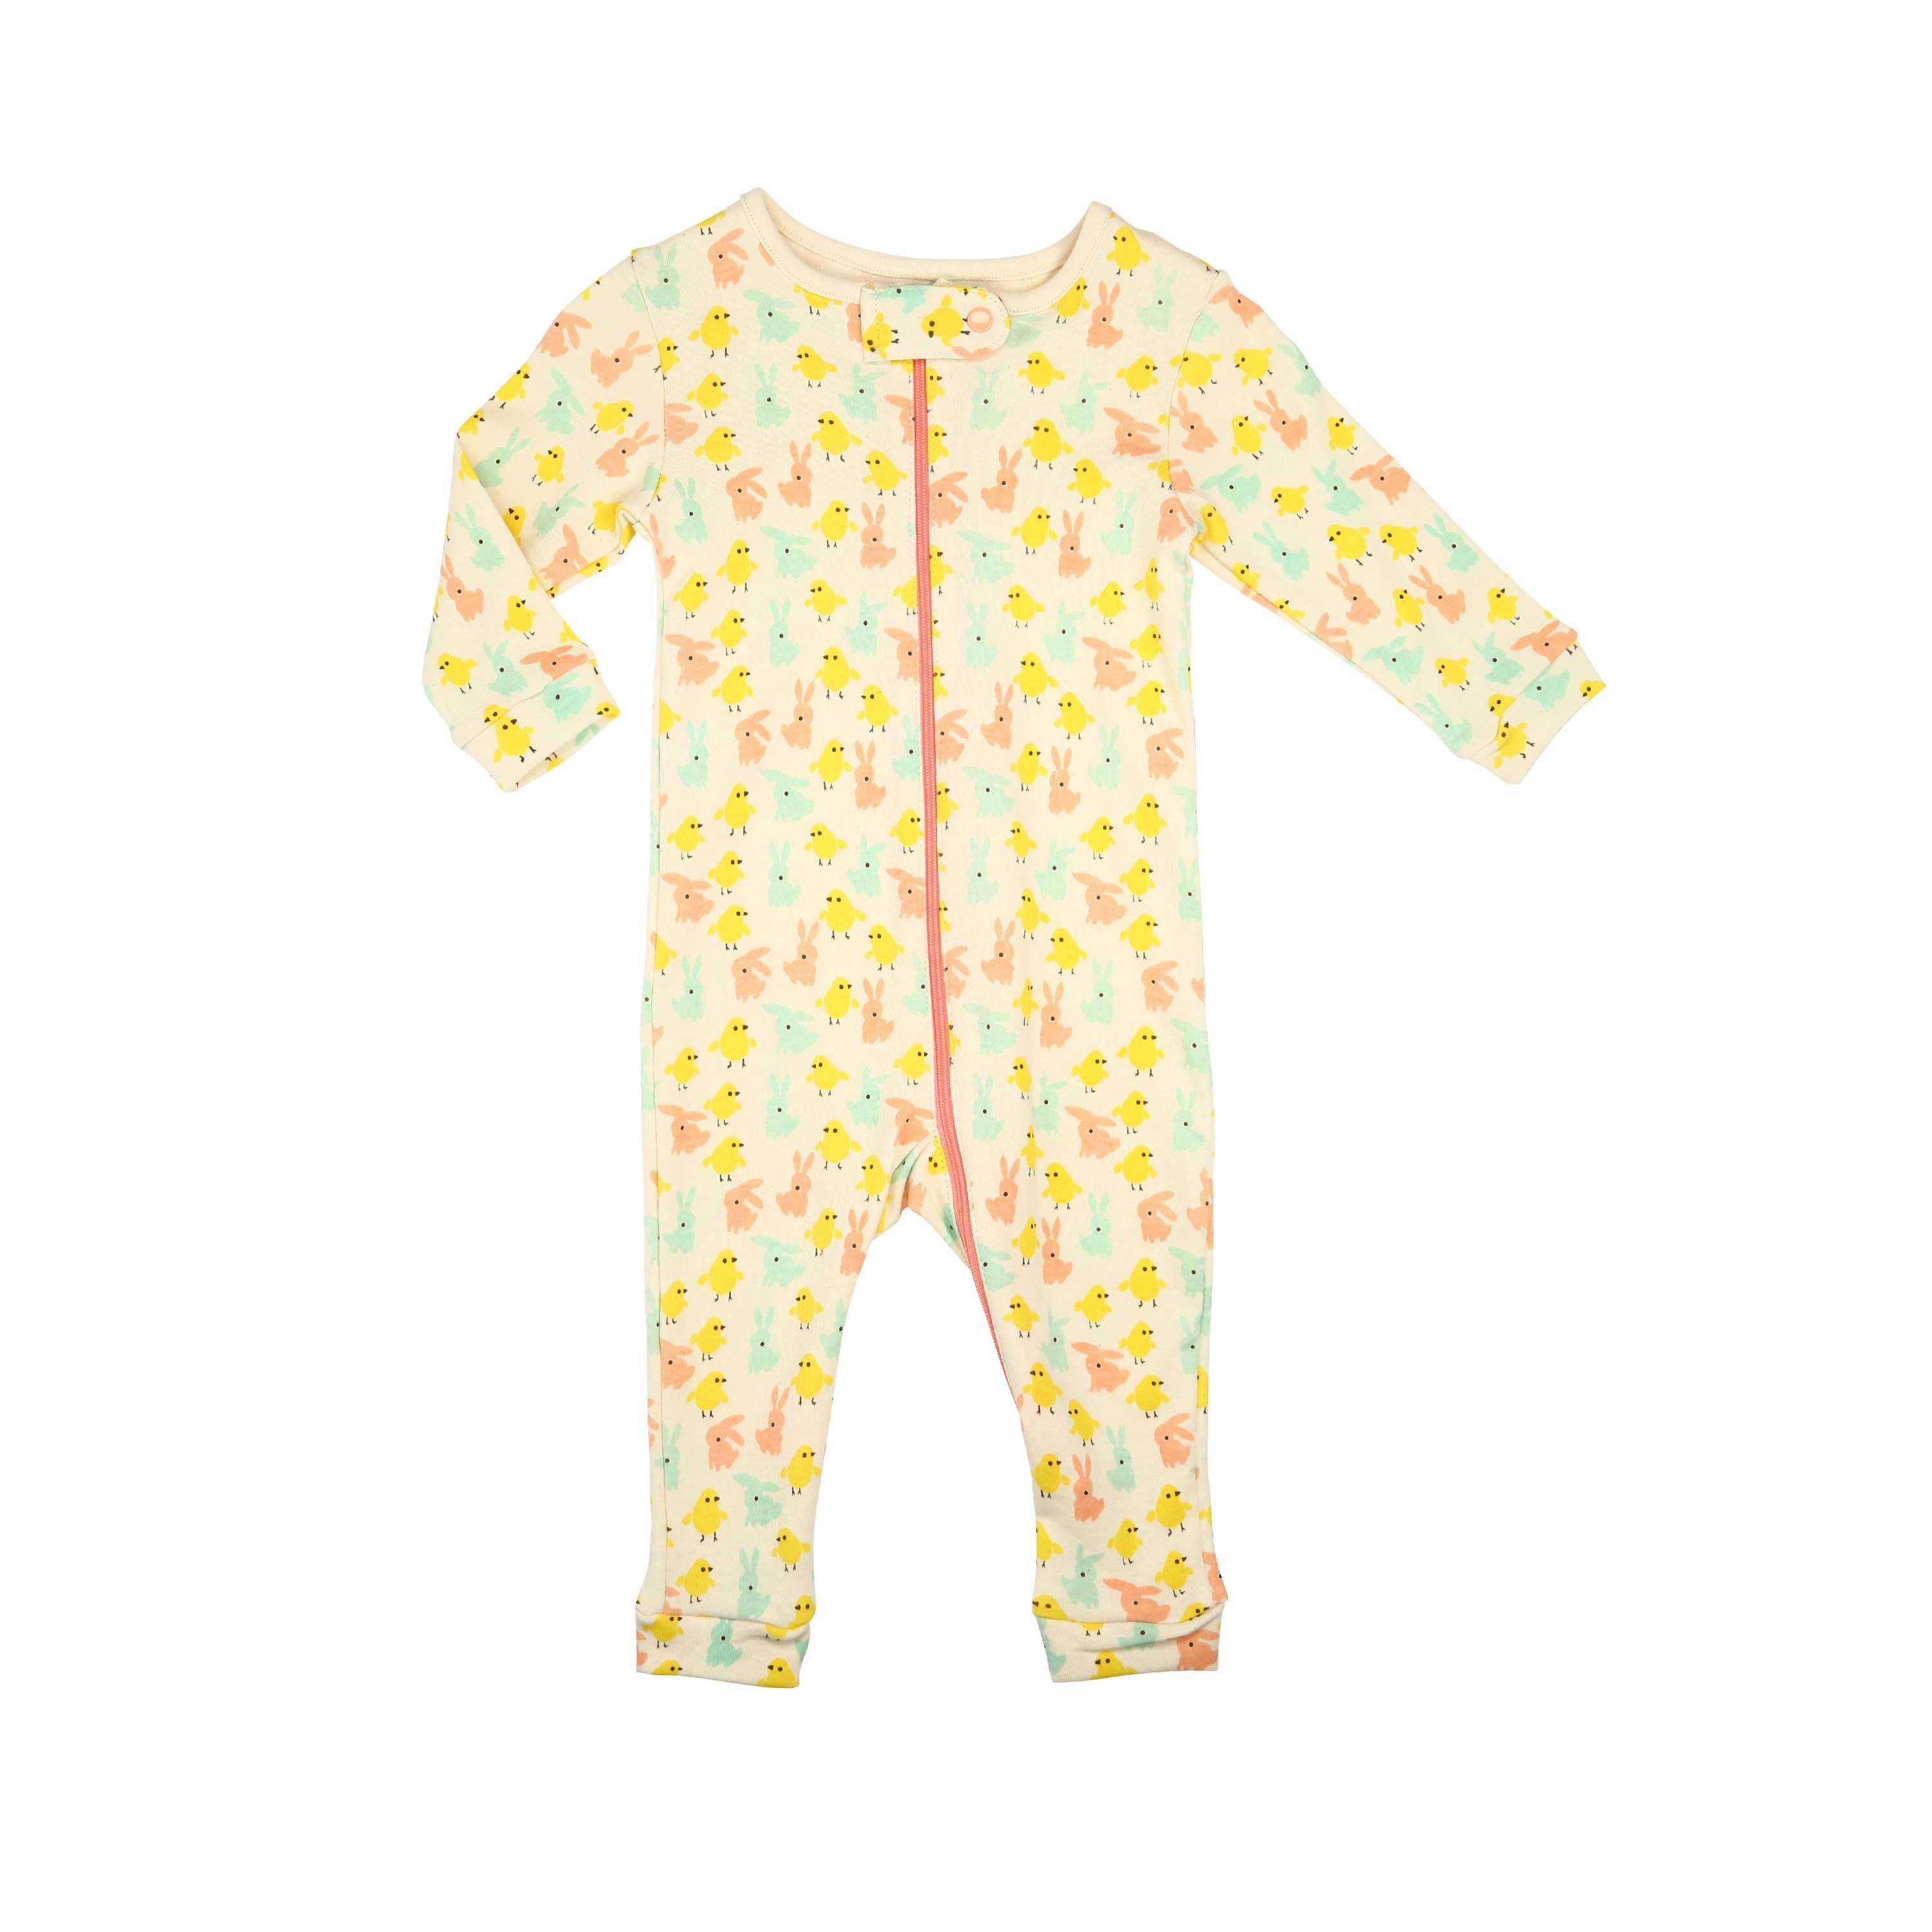 Cute Bunny Baby Romper Organic Cotton Baby Wear